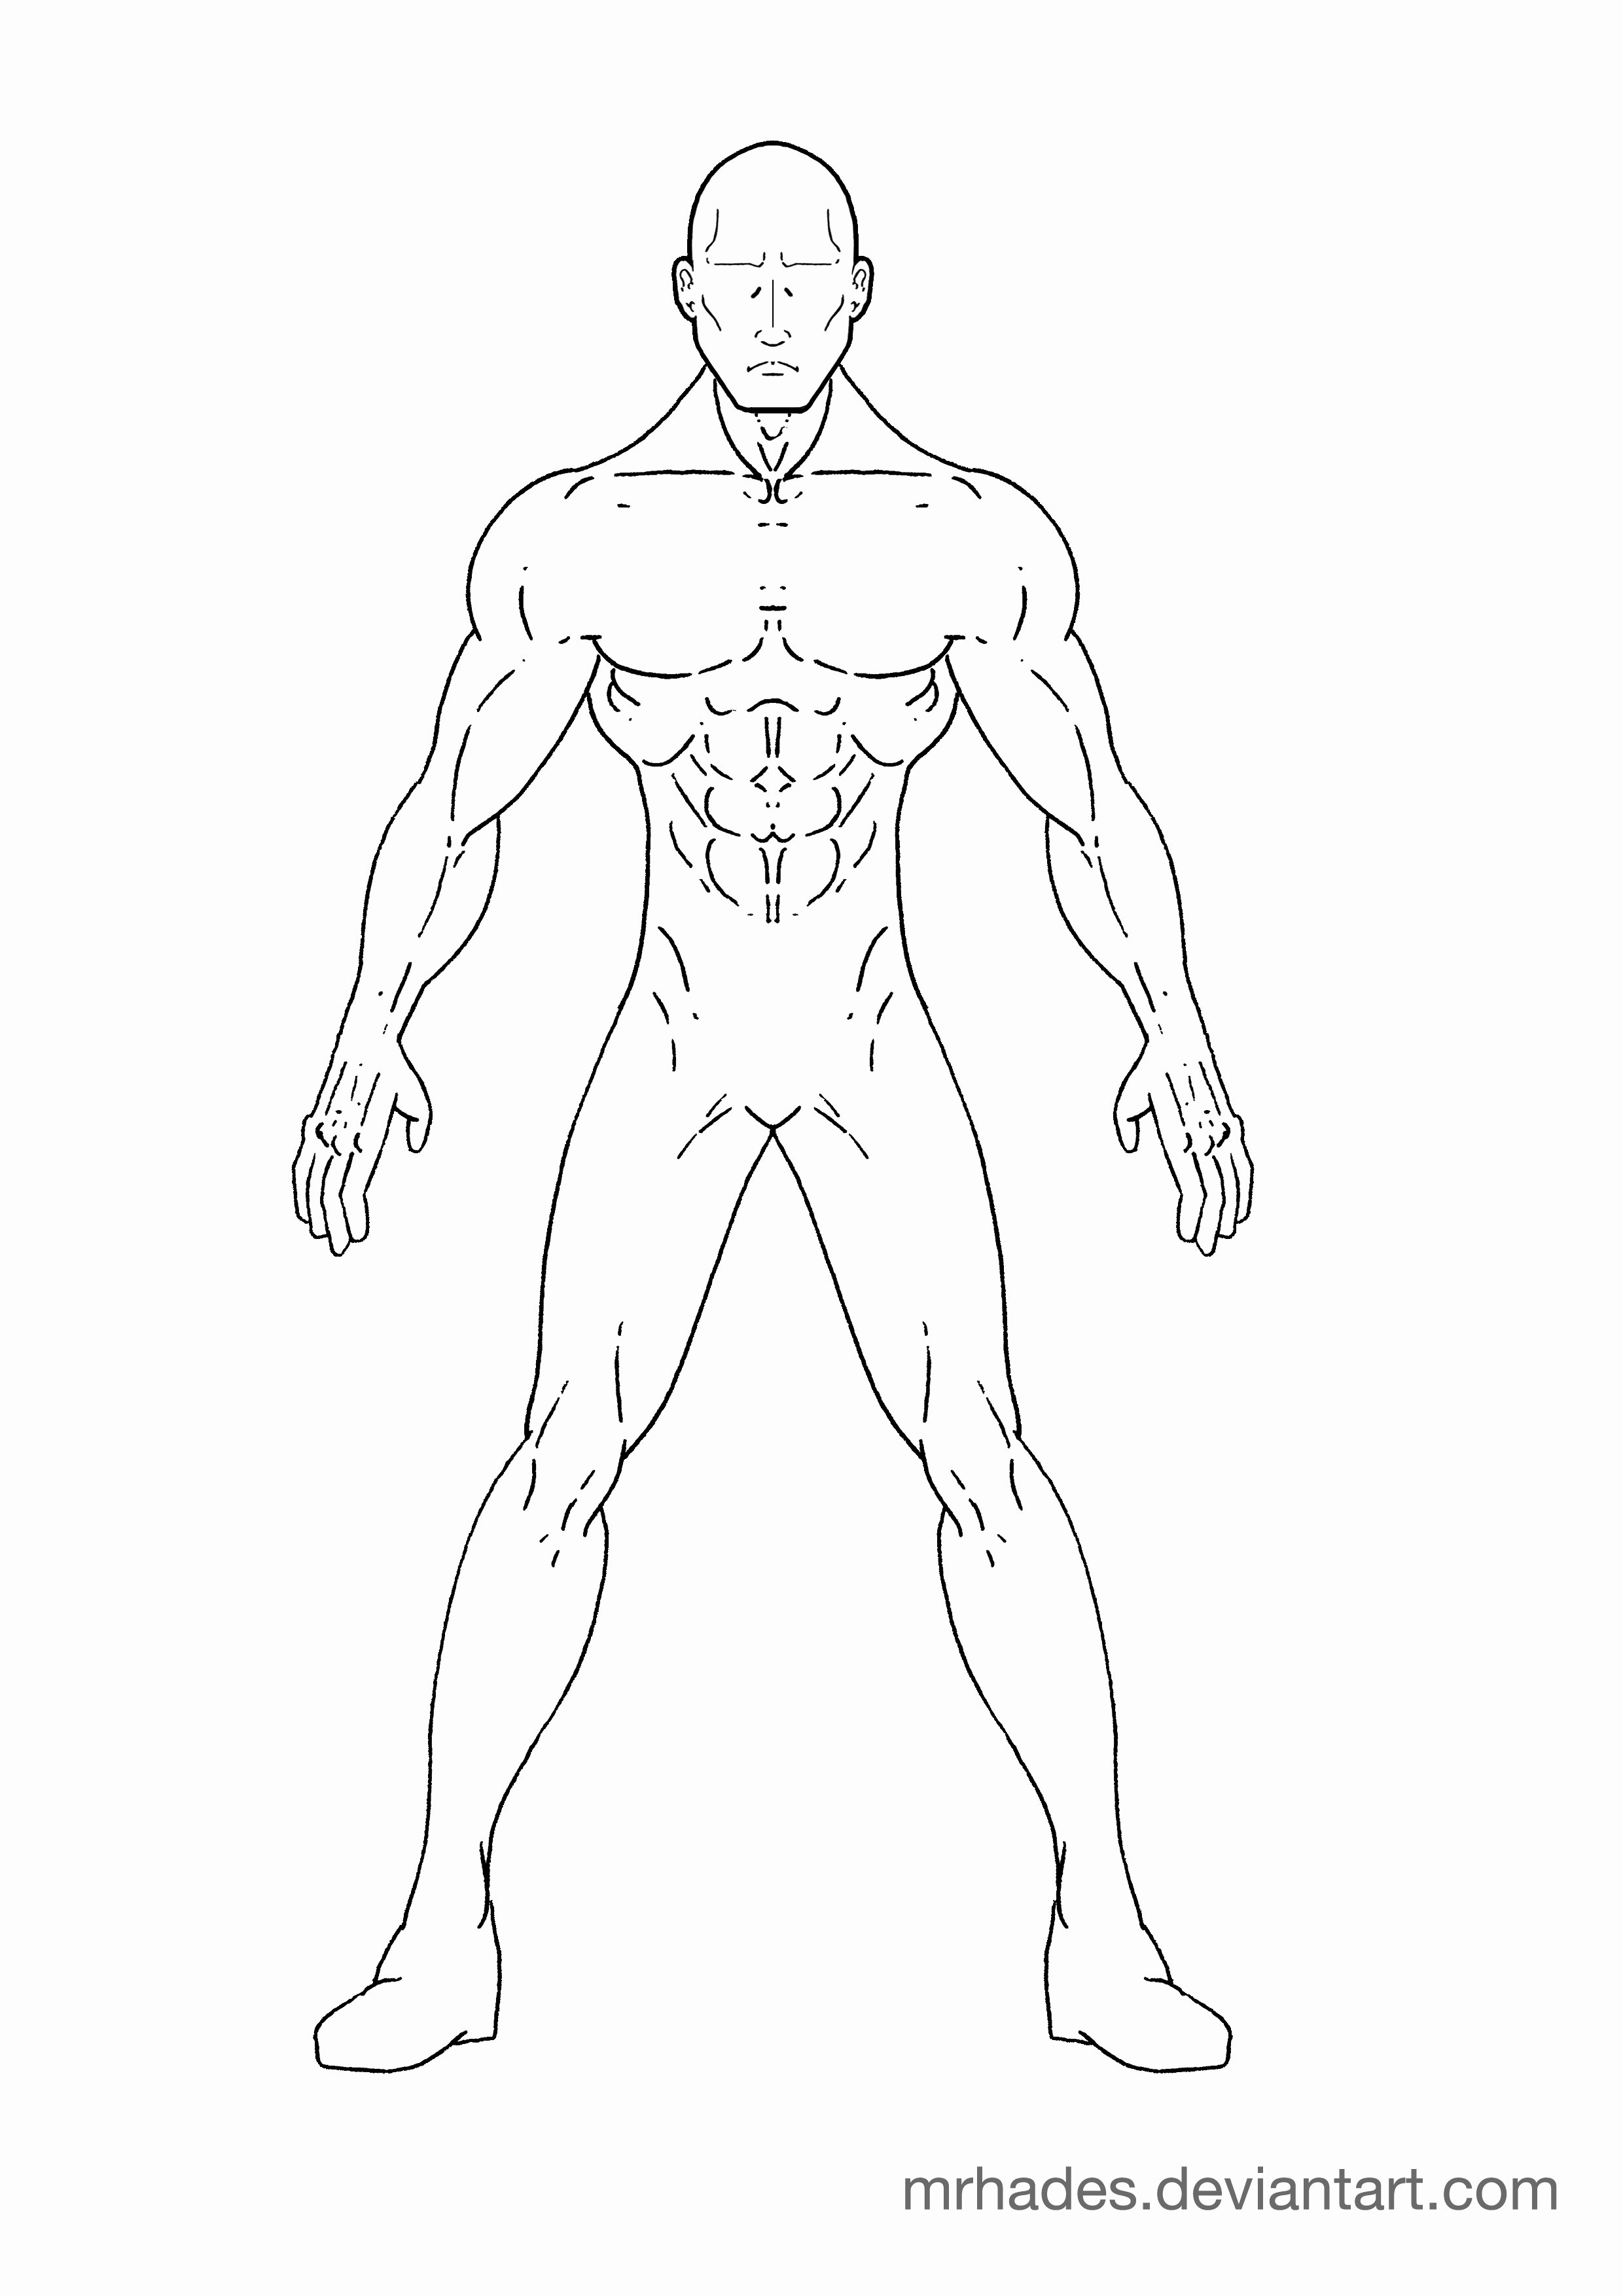 Blank Male Body Template Inspirational Superhero Drawing Templates Drawings Art Gallery